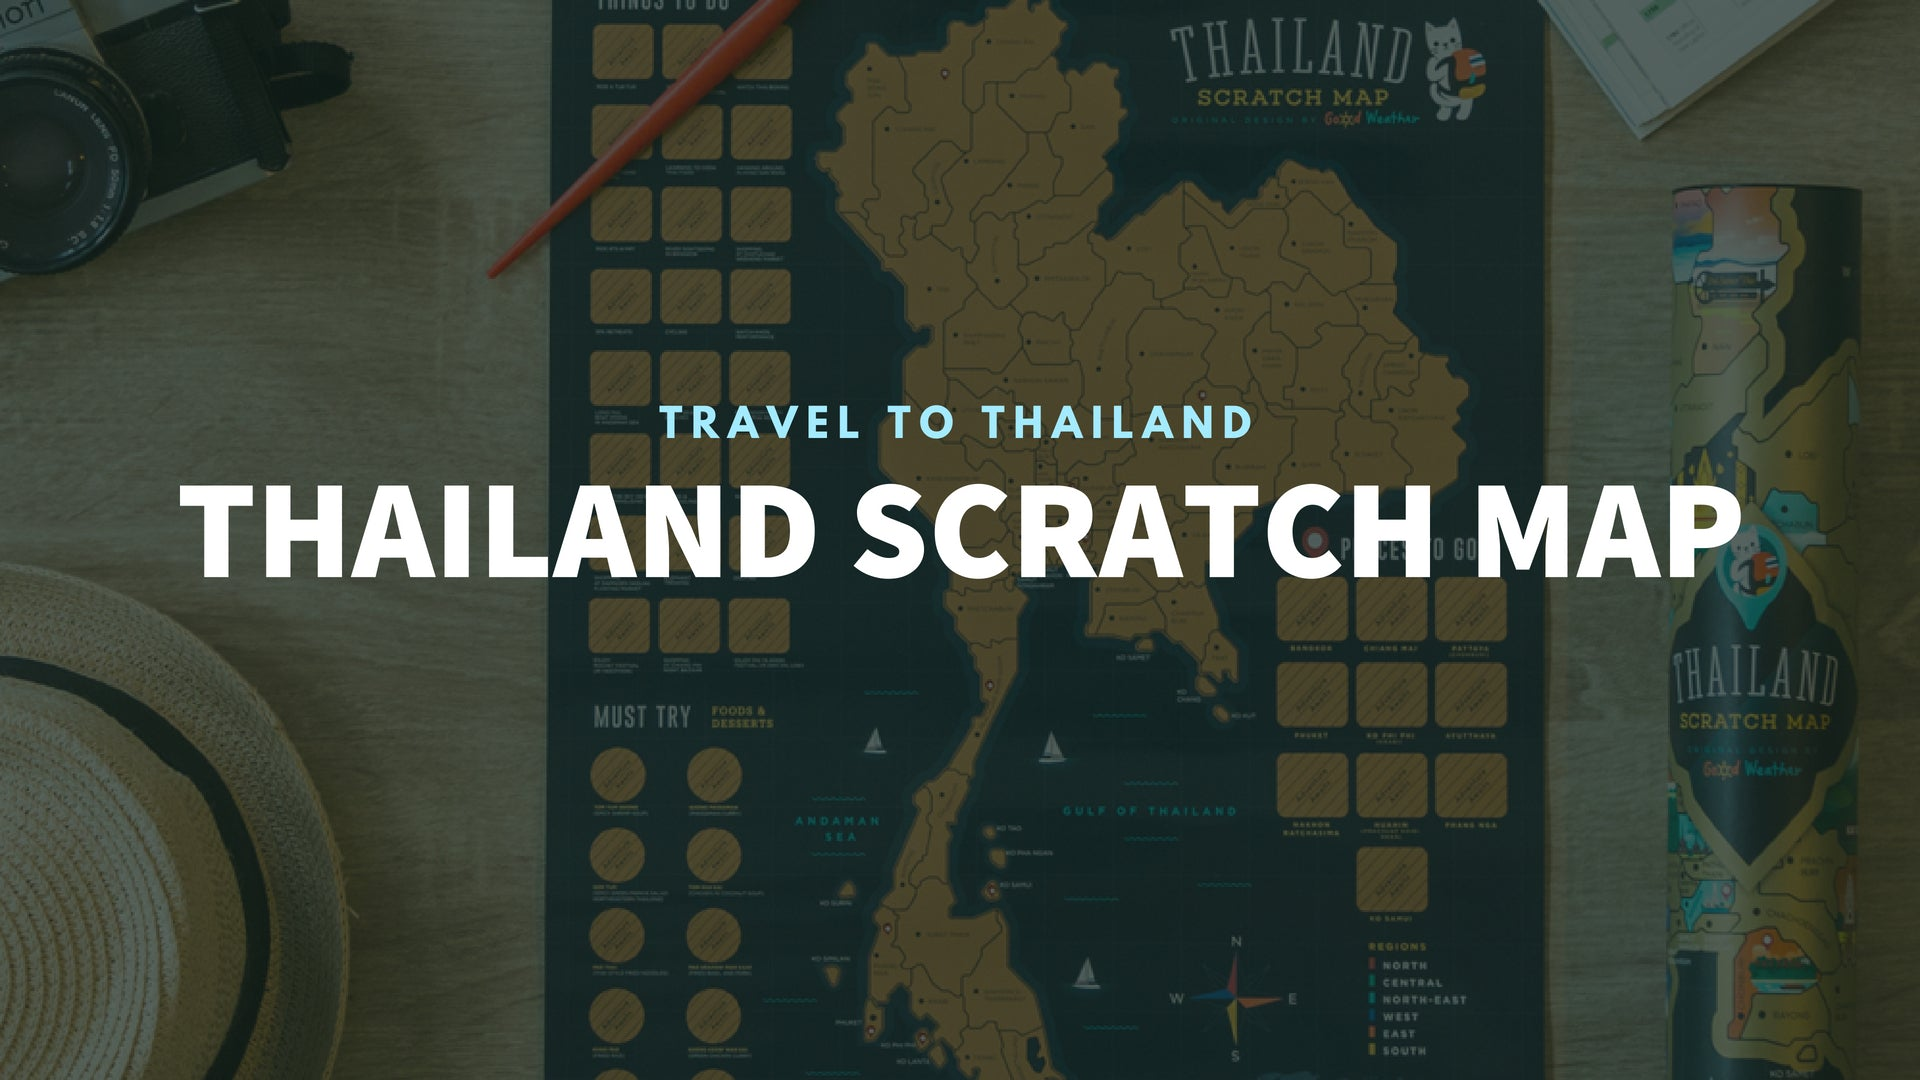 thailand scratch map - iMartCity 刮刮樂